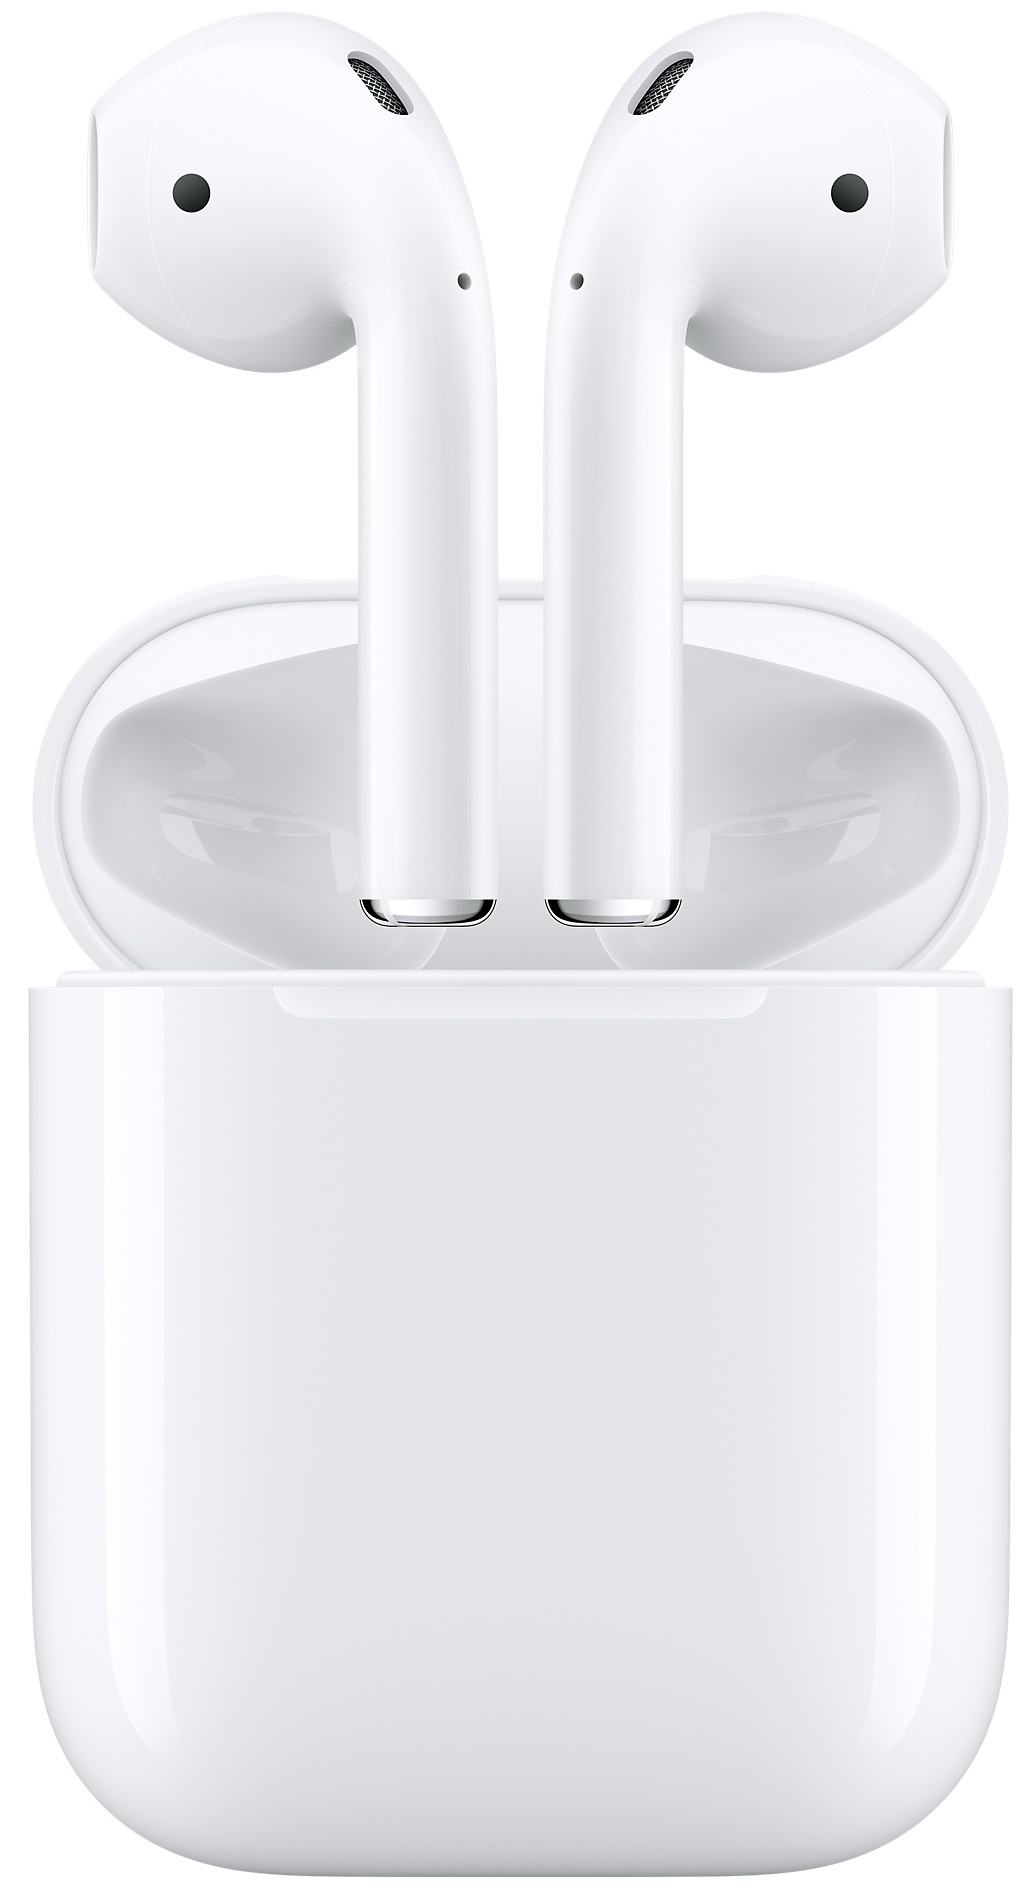 Offerta Apple AirPods su TrovaUsati.it